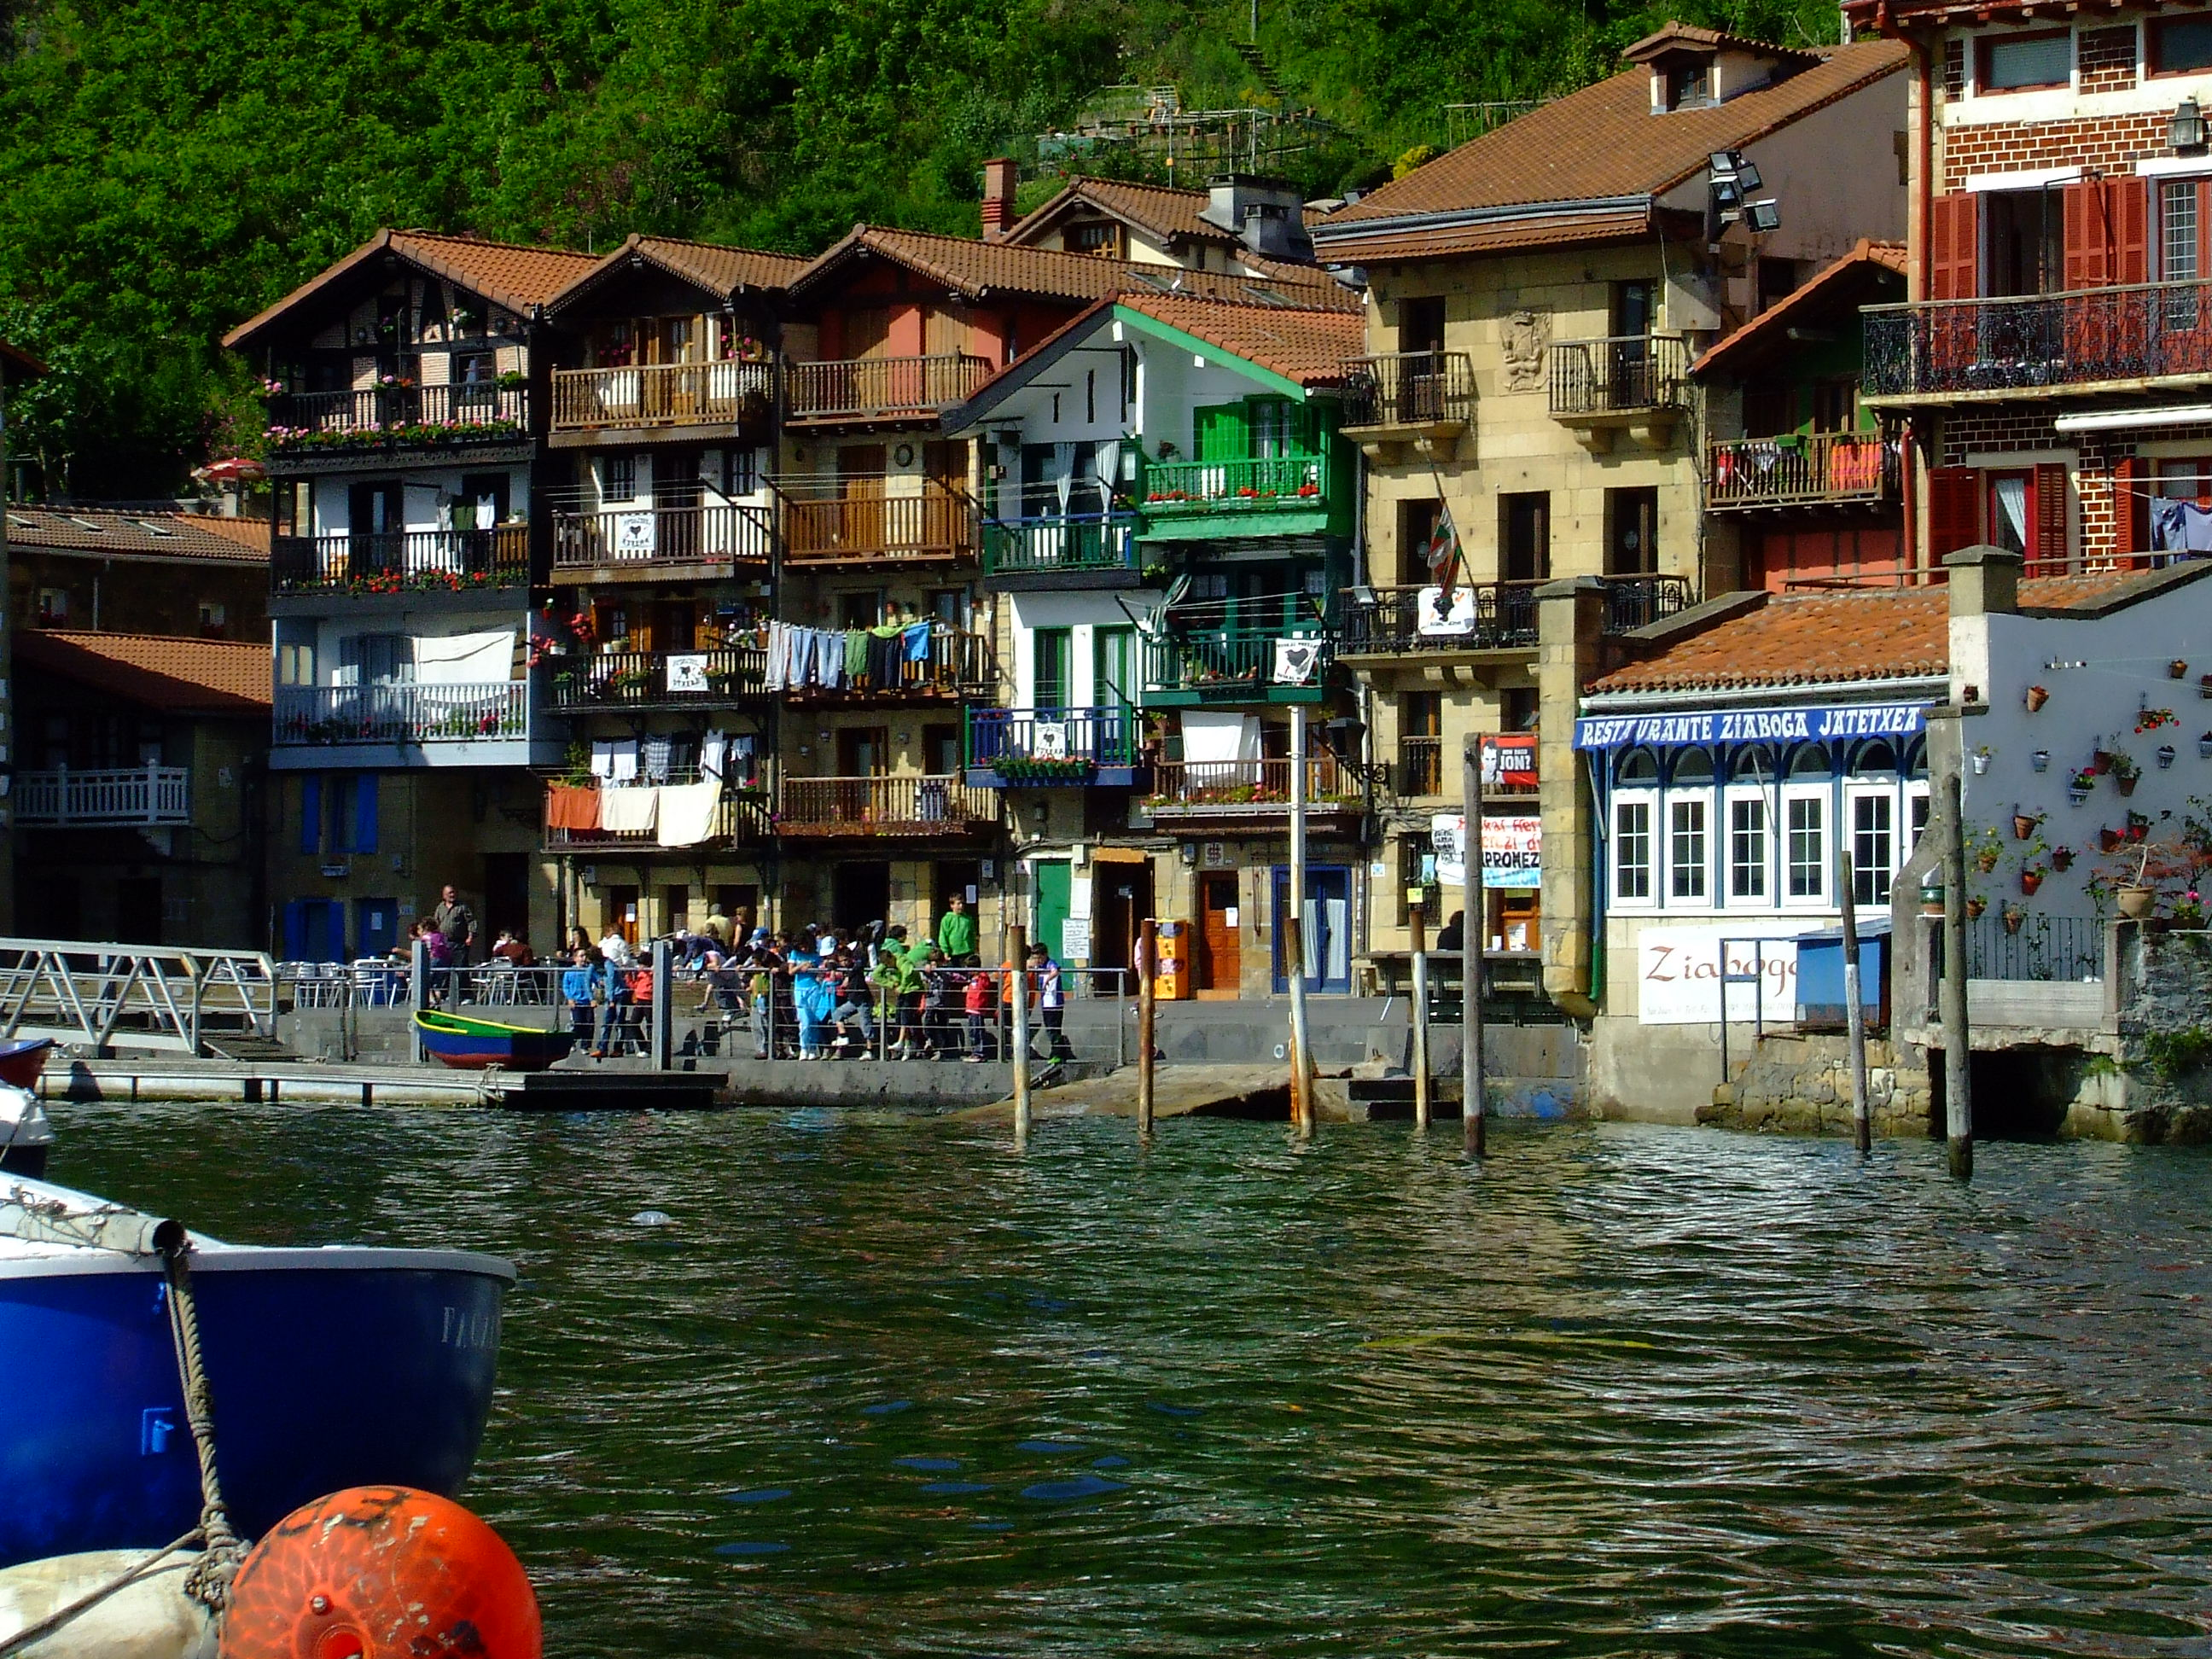 Guided tour in the Old Town of Pasaia